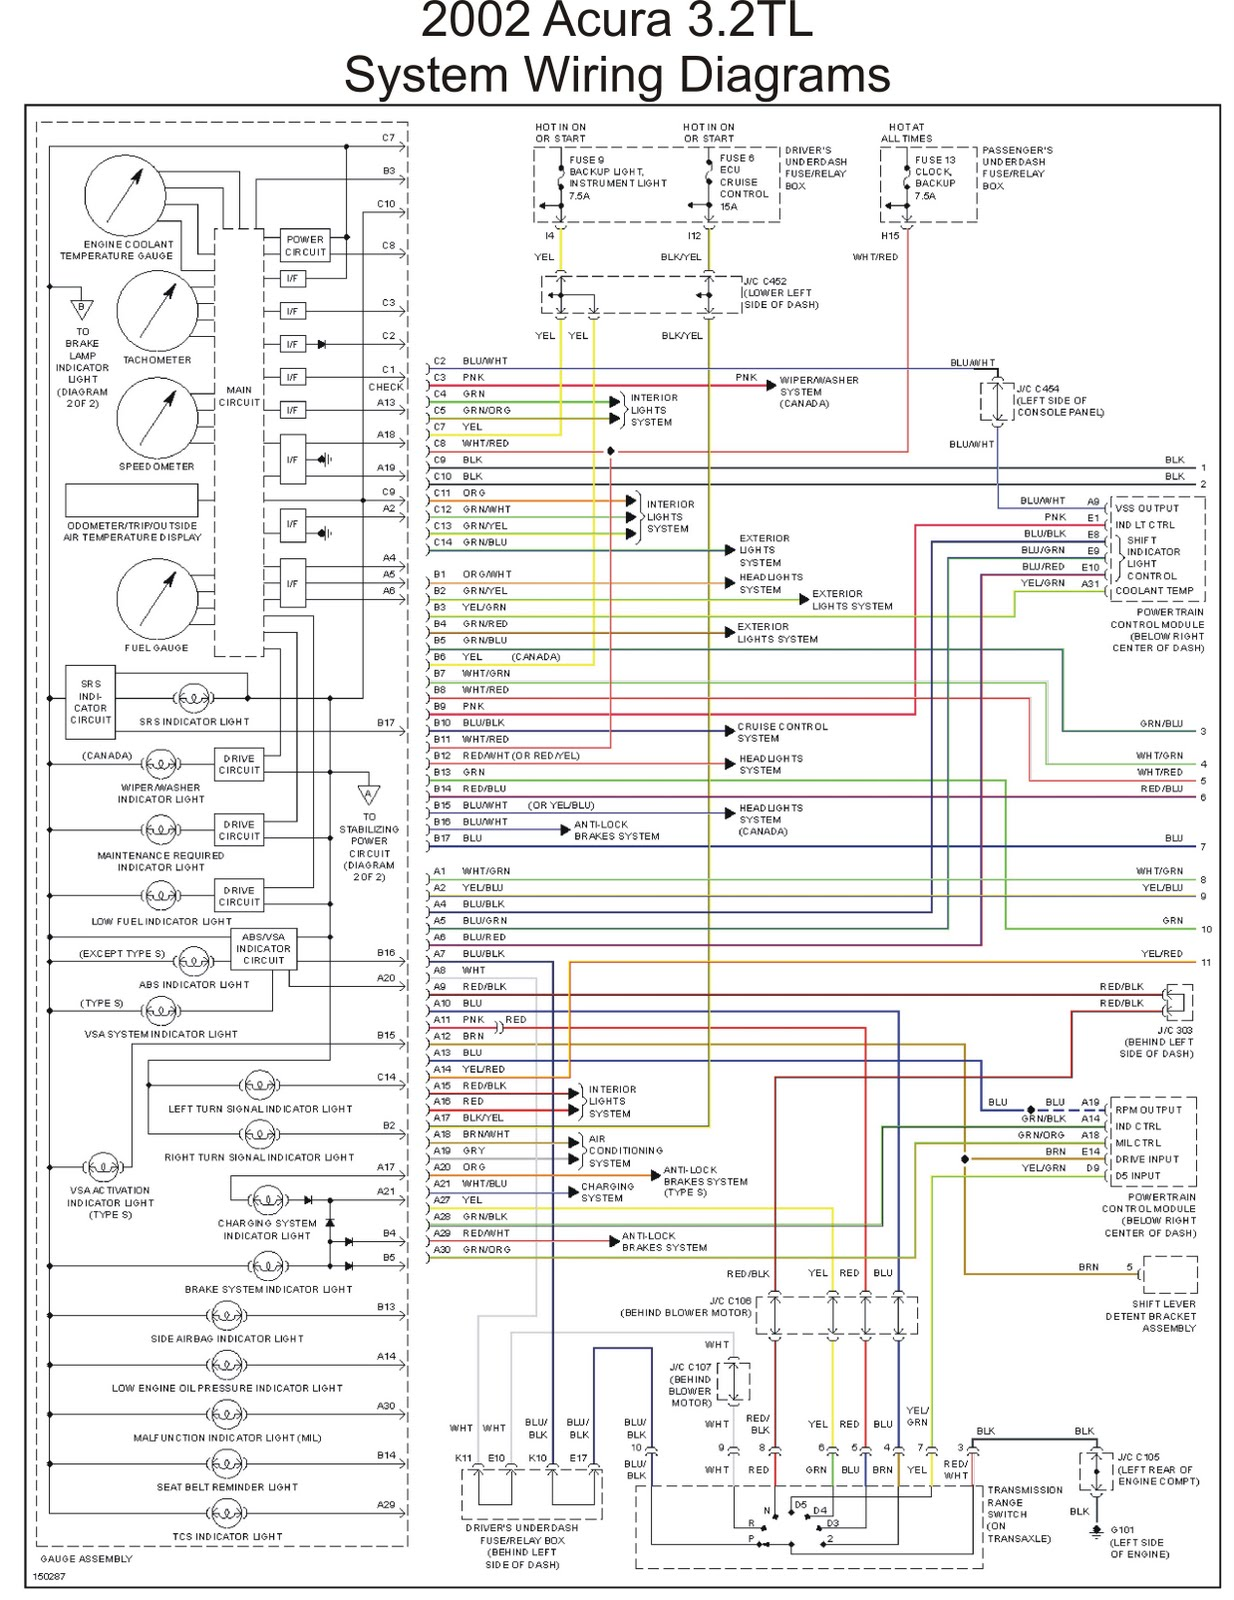 Groovy Acura Legend Stereo Wiring Diagram Wiring Diagram Dandim Mohammedshrine Wiring Diagrams Dandimmohammedshrineorg